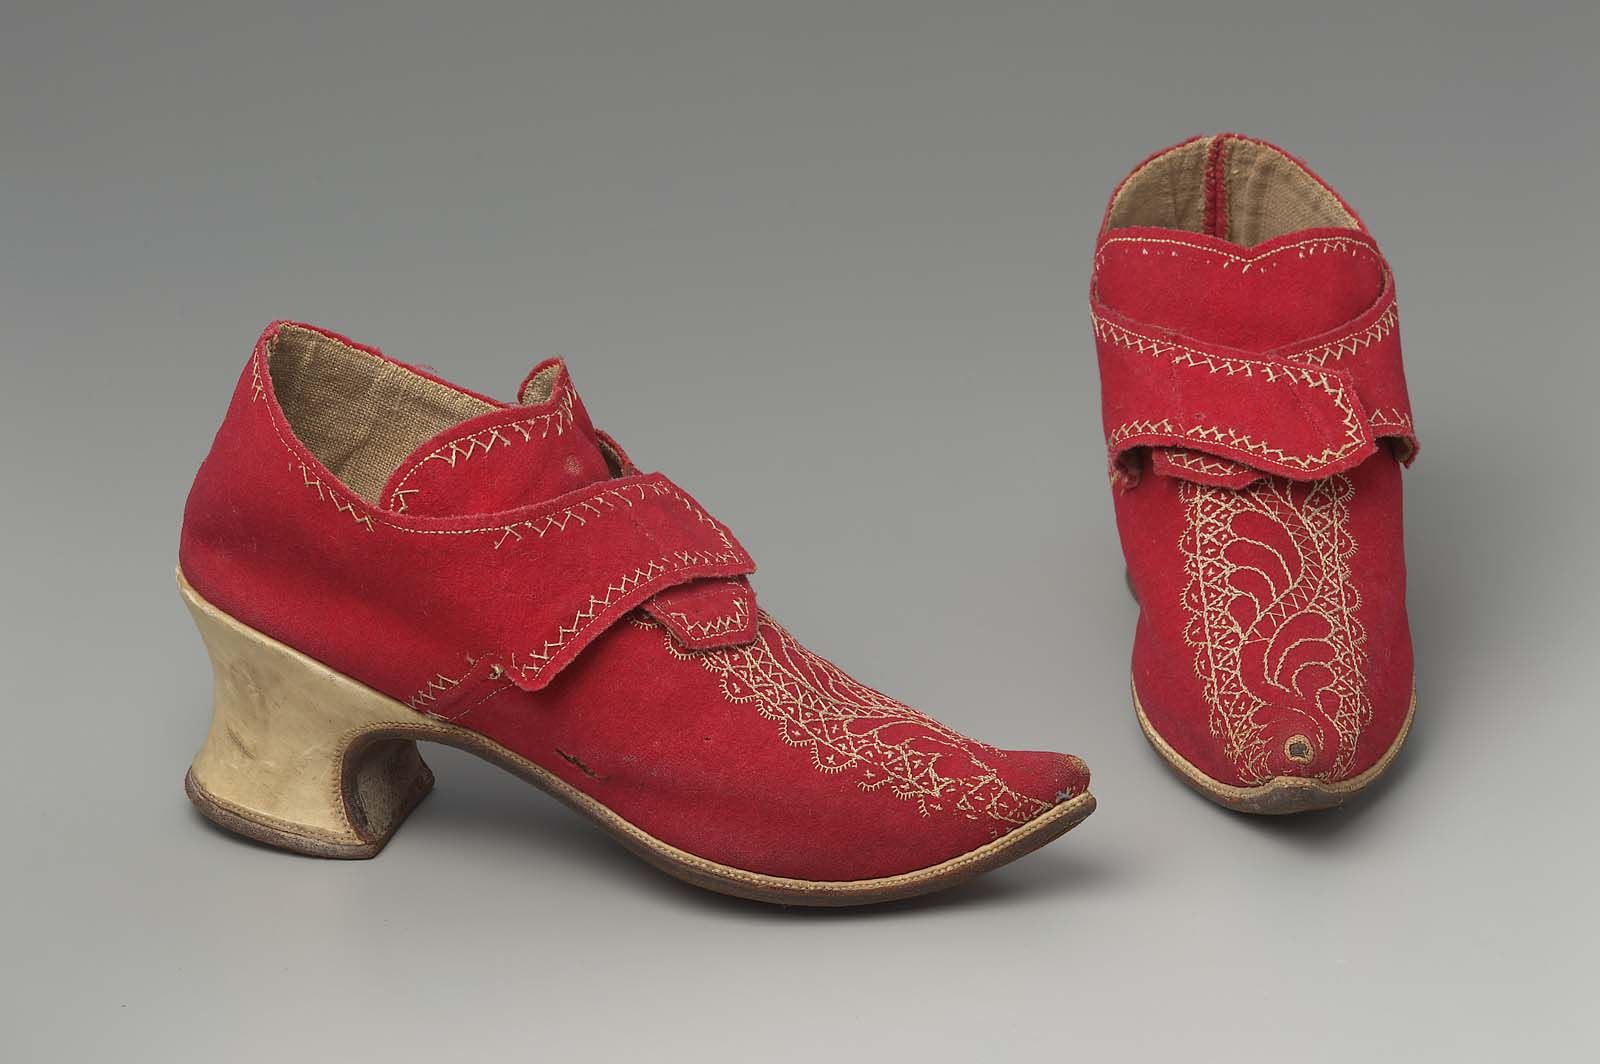 Pair of woman's buckle shoes c1720-40 English Accession Number 44.351a-b Medium or Technique Wool embroidered with silk, linen lining, and leather heel and sole.